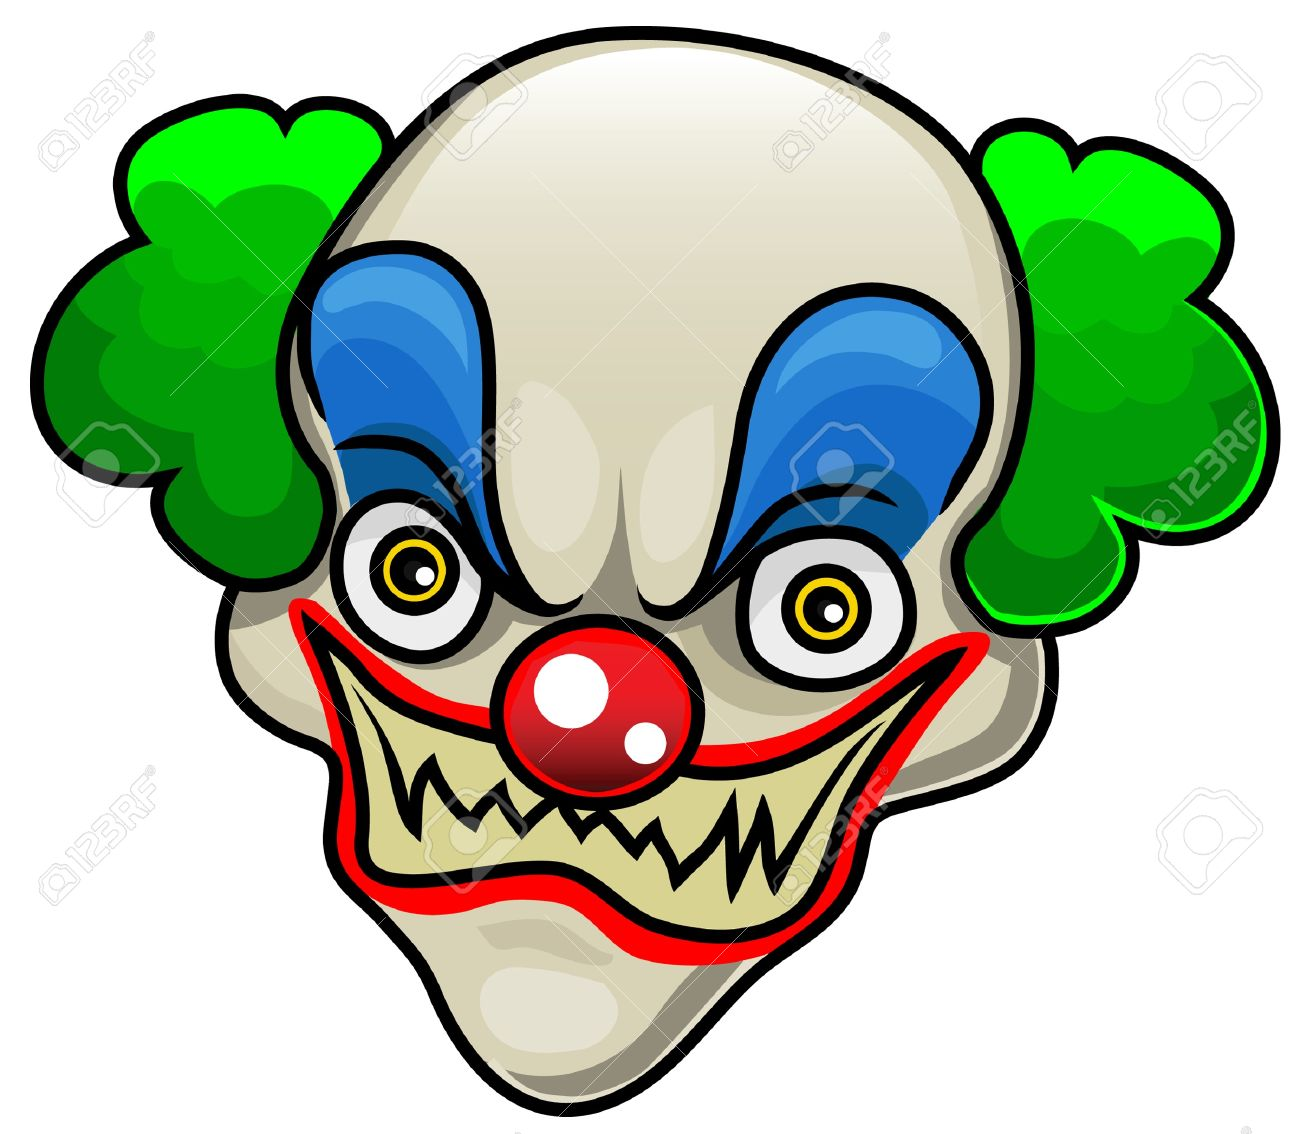 Scary Clown Clipart at GetDrawings.com.